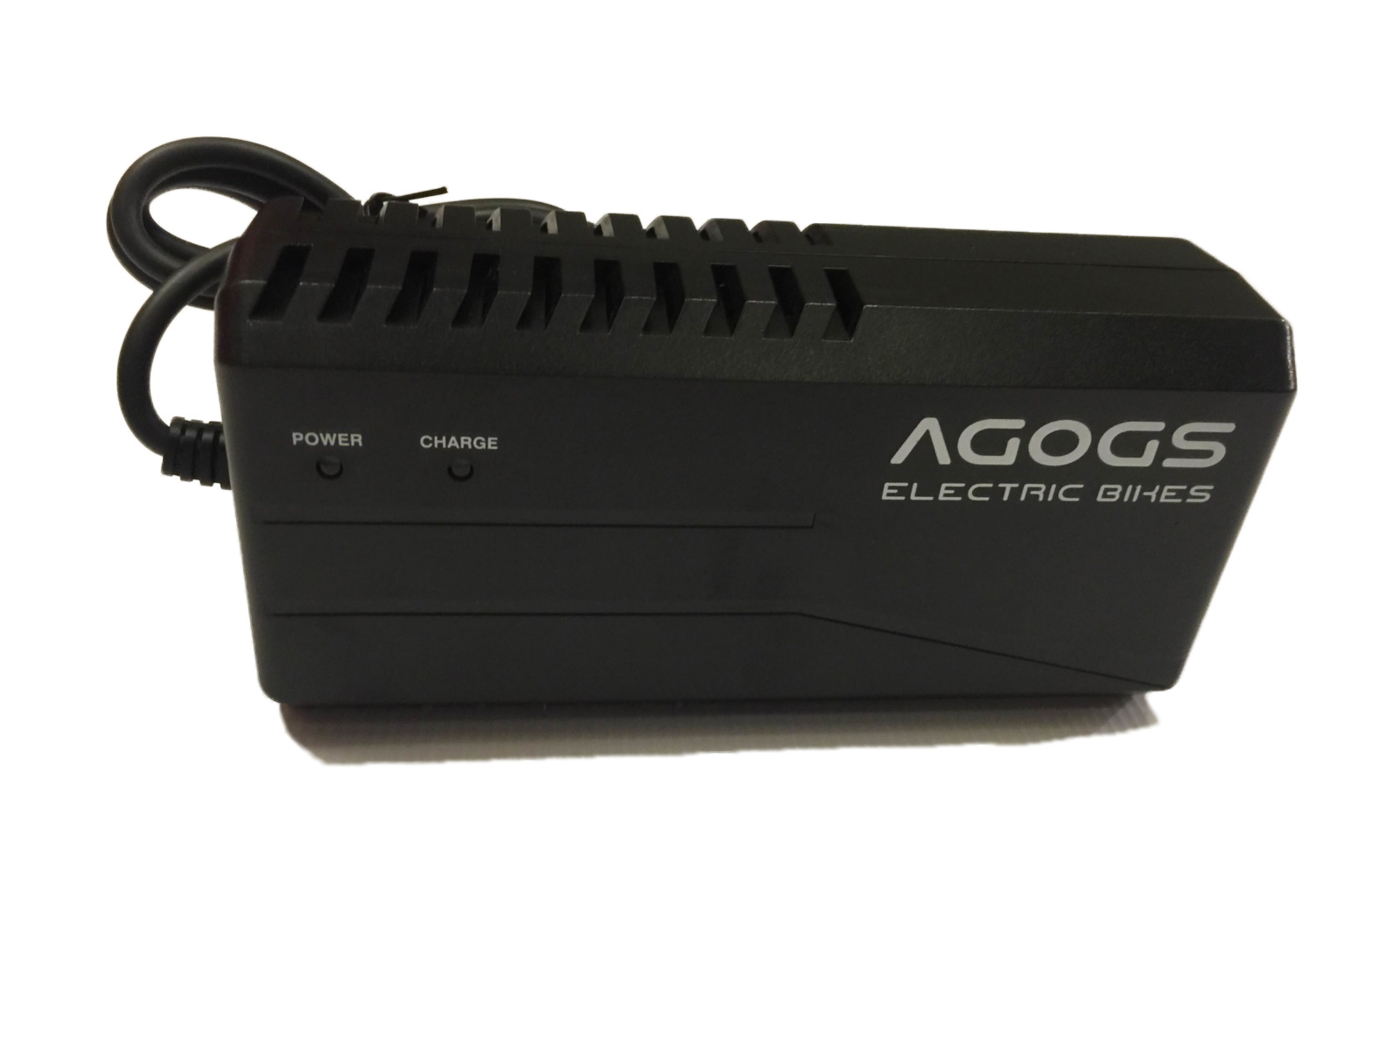 Fast-charger AGOGS 3A